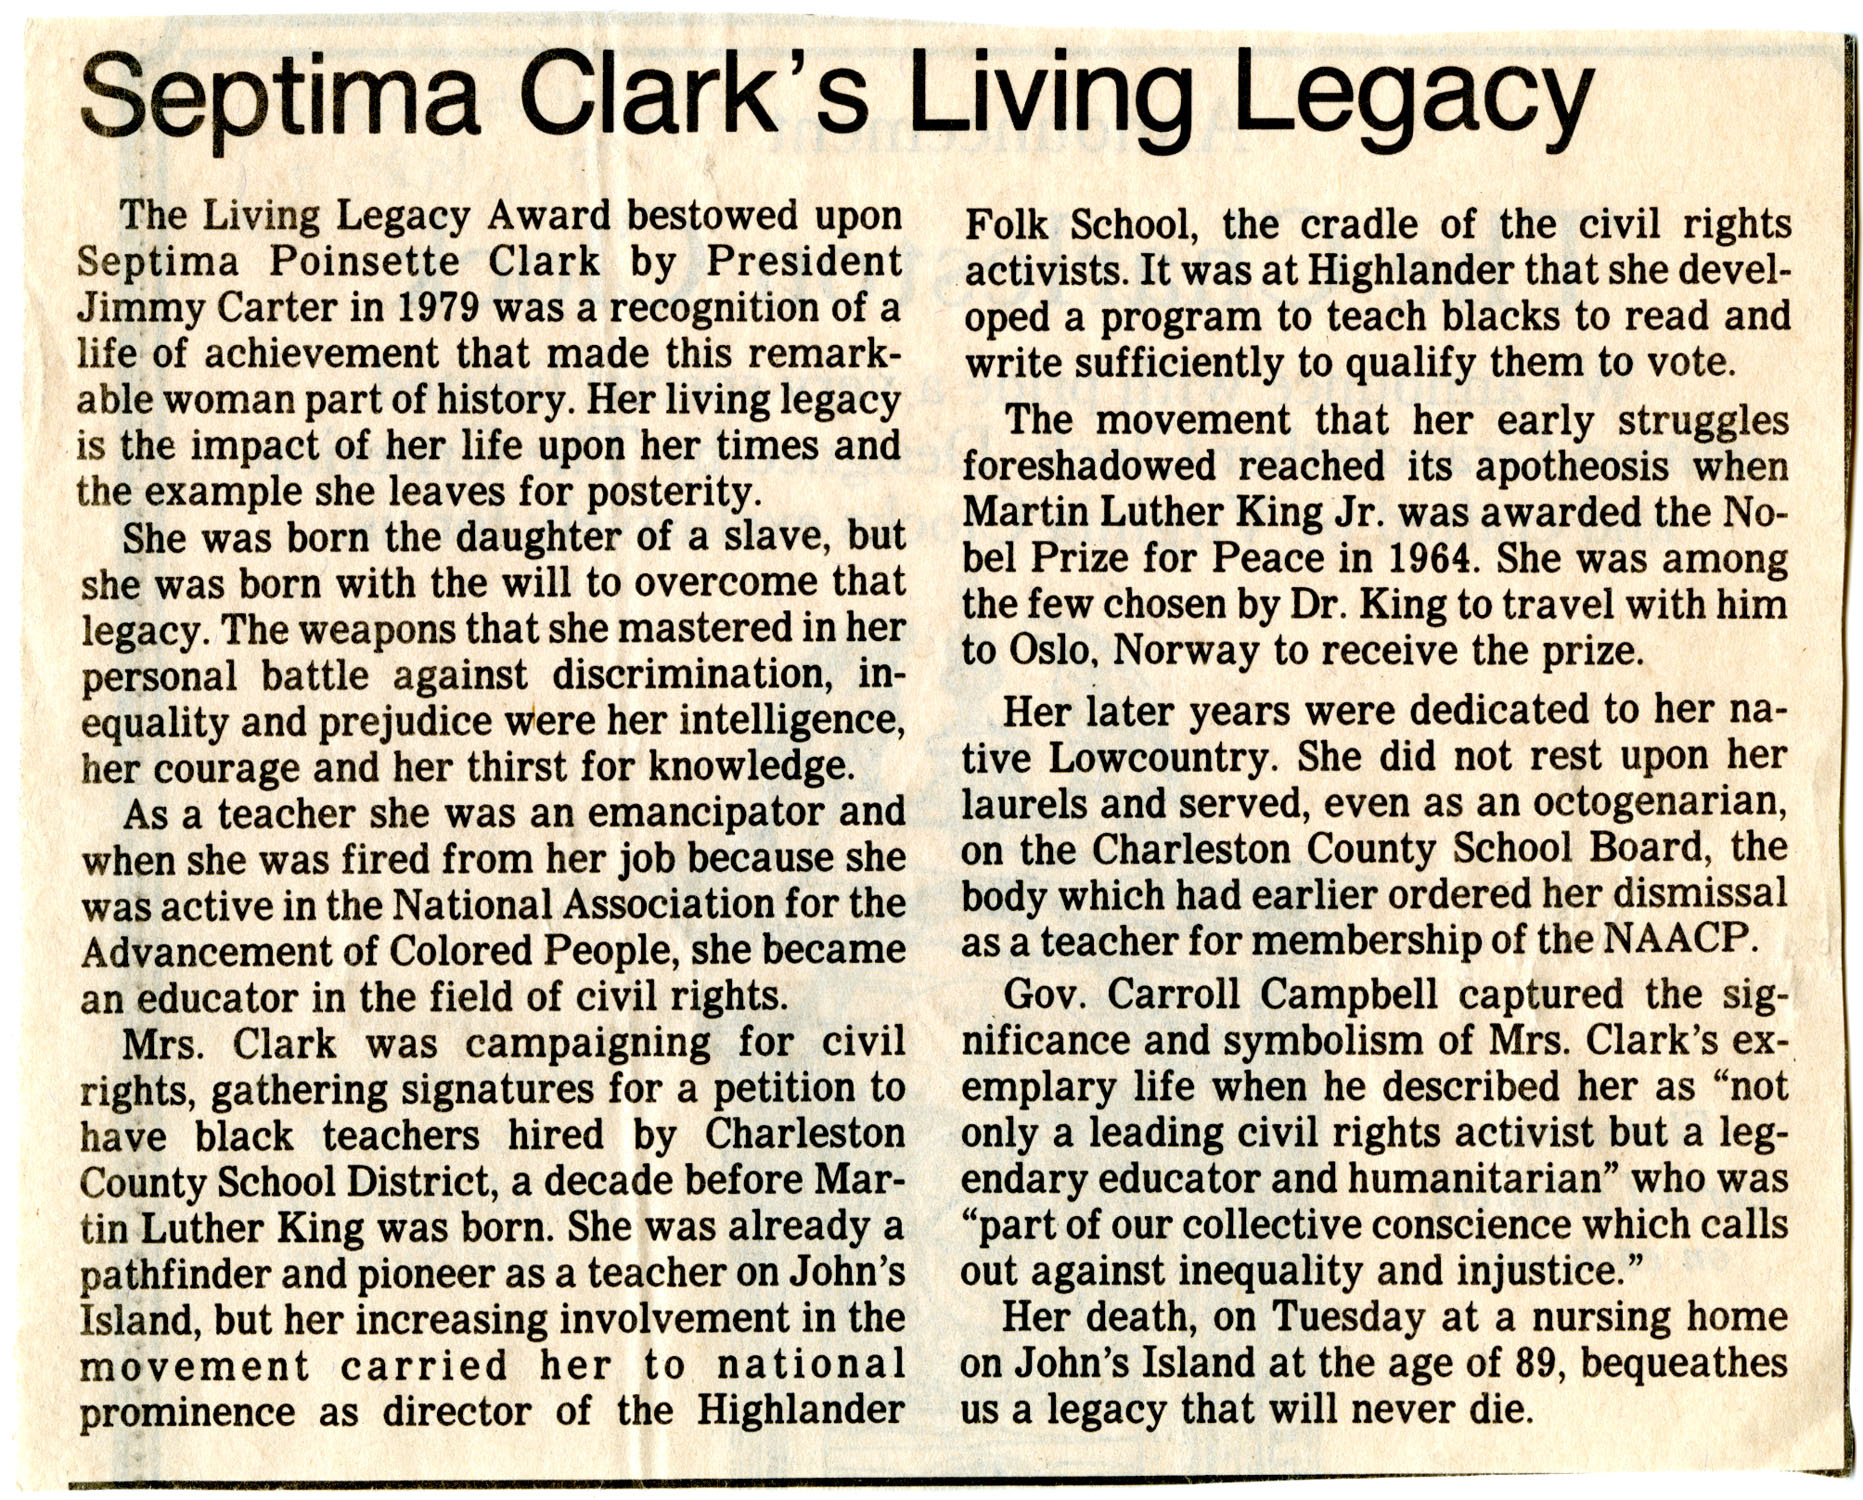 Newspaper Article, Septima Clark's Living Legacy